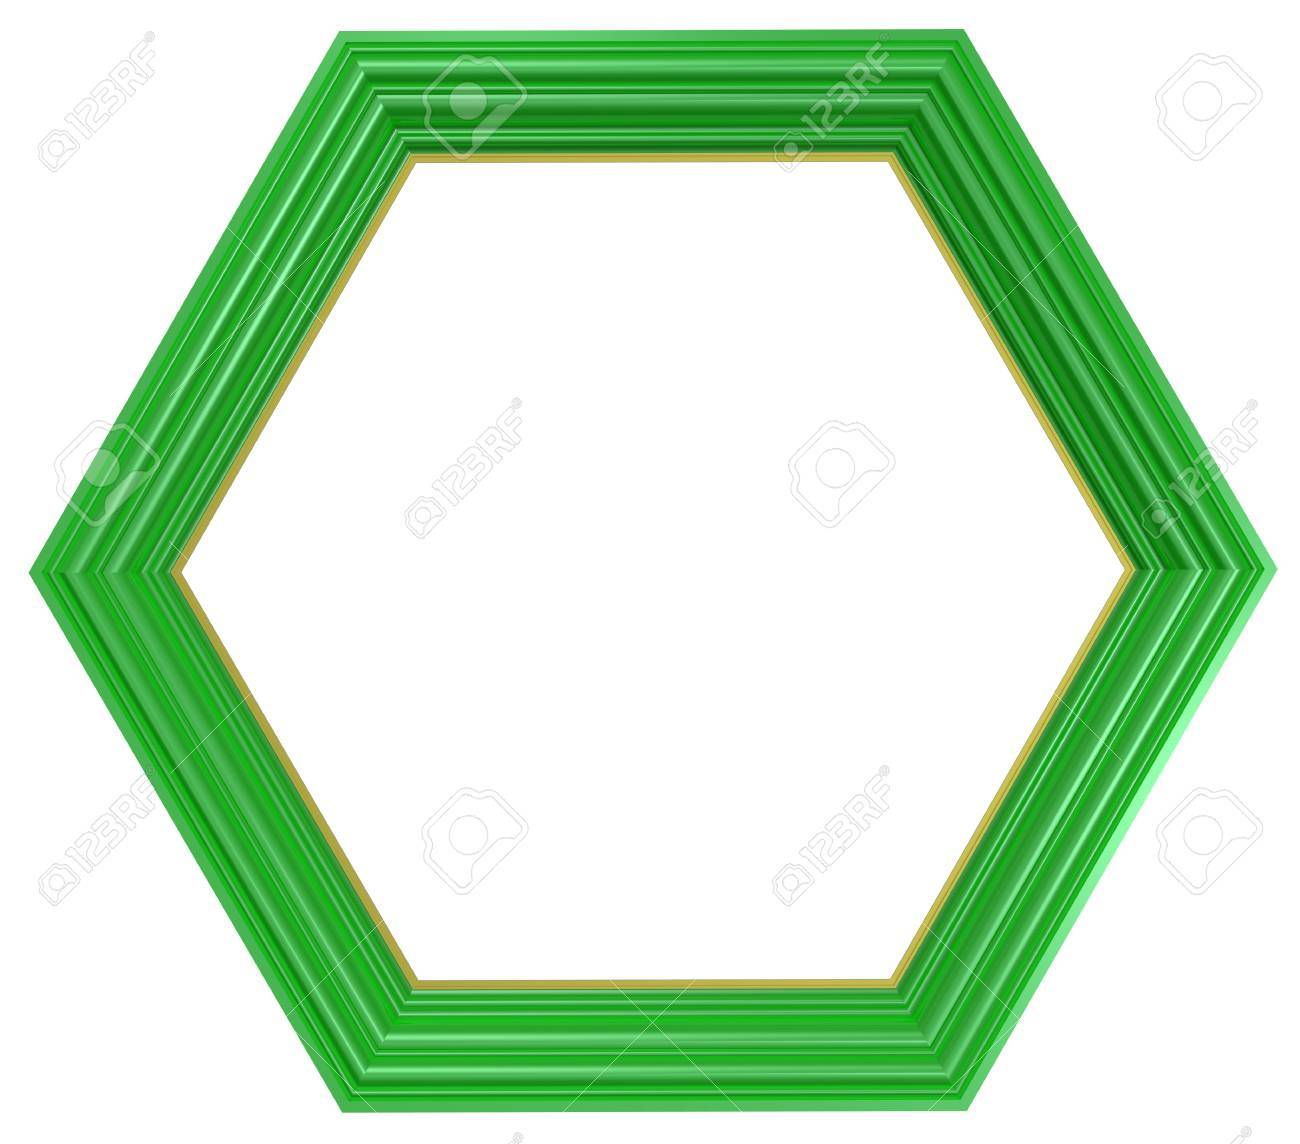 Light green frame isolated on white background. Computer generated 3D photo rendering. Stock Photo - 6528777